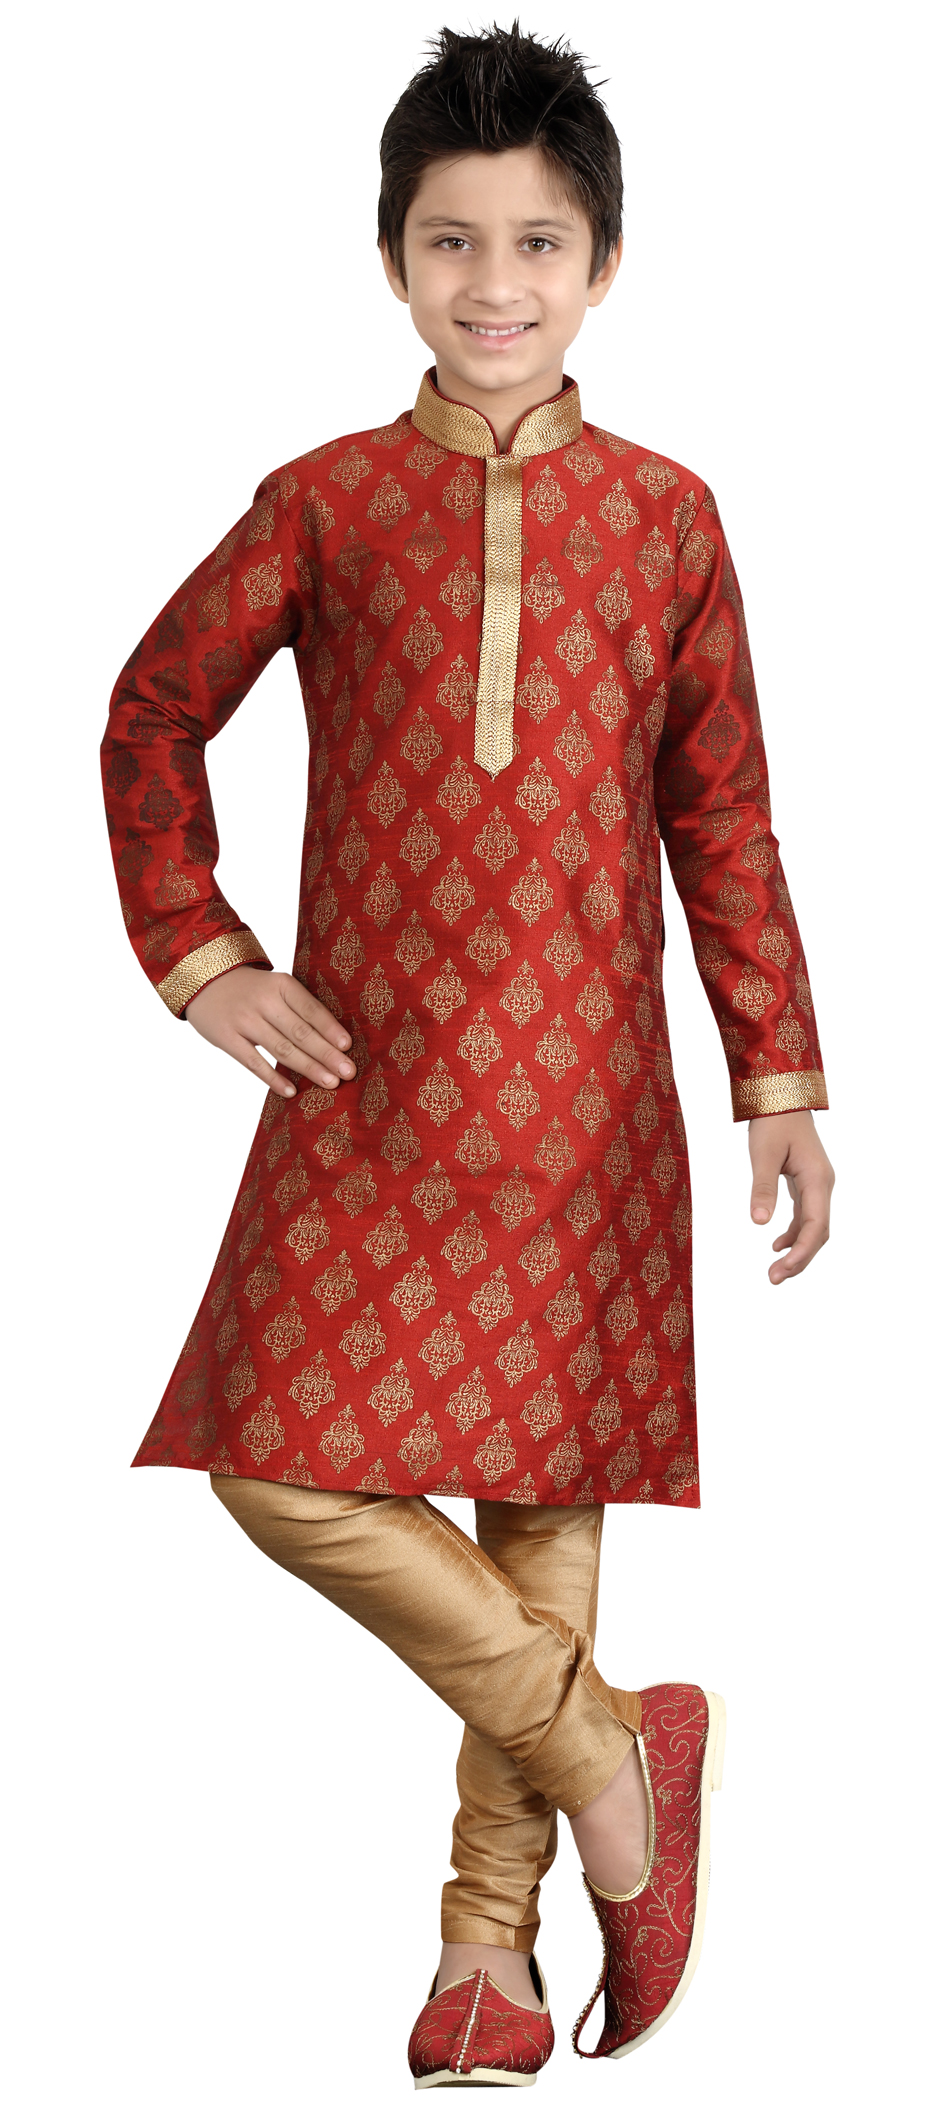 201887: Red and Maroon color family stitched Boy Kurta ...